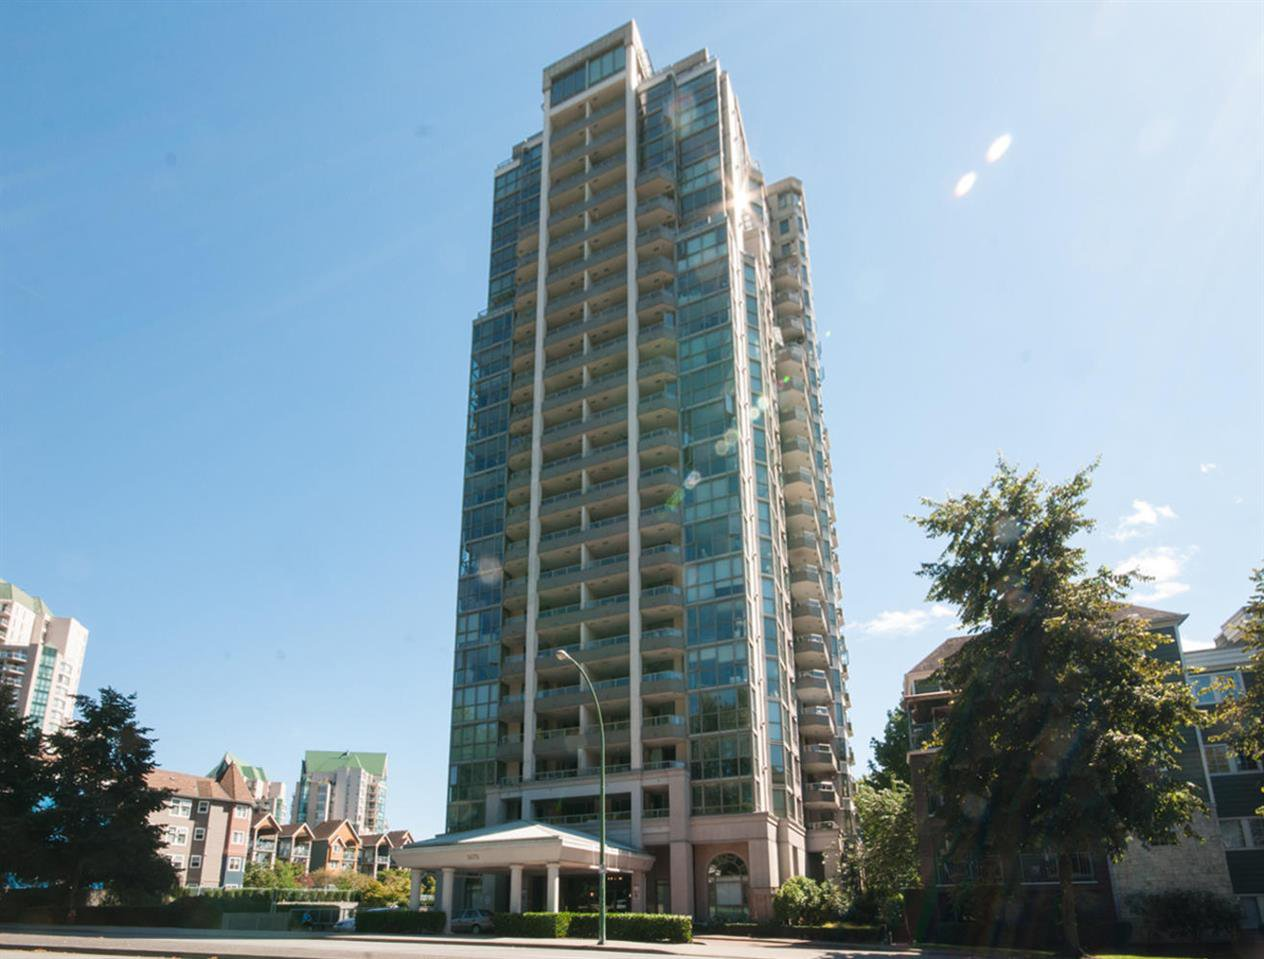 """Main Photo: 1506 3070 GUILDFORD Way in Coquitlam: North Coquitlam Condo for sale in """"LAKESIDE TERRACE"""" : MLS®# R2097115"""